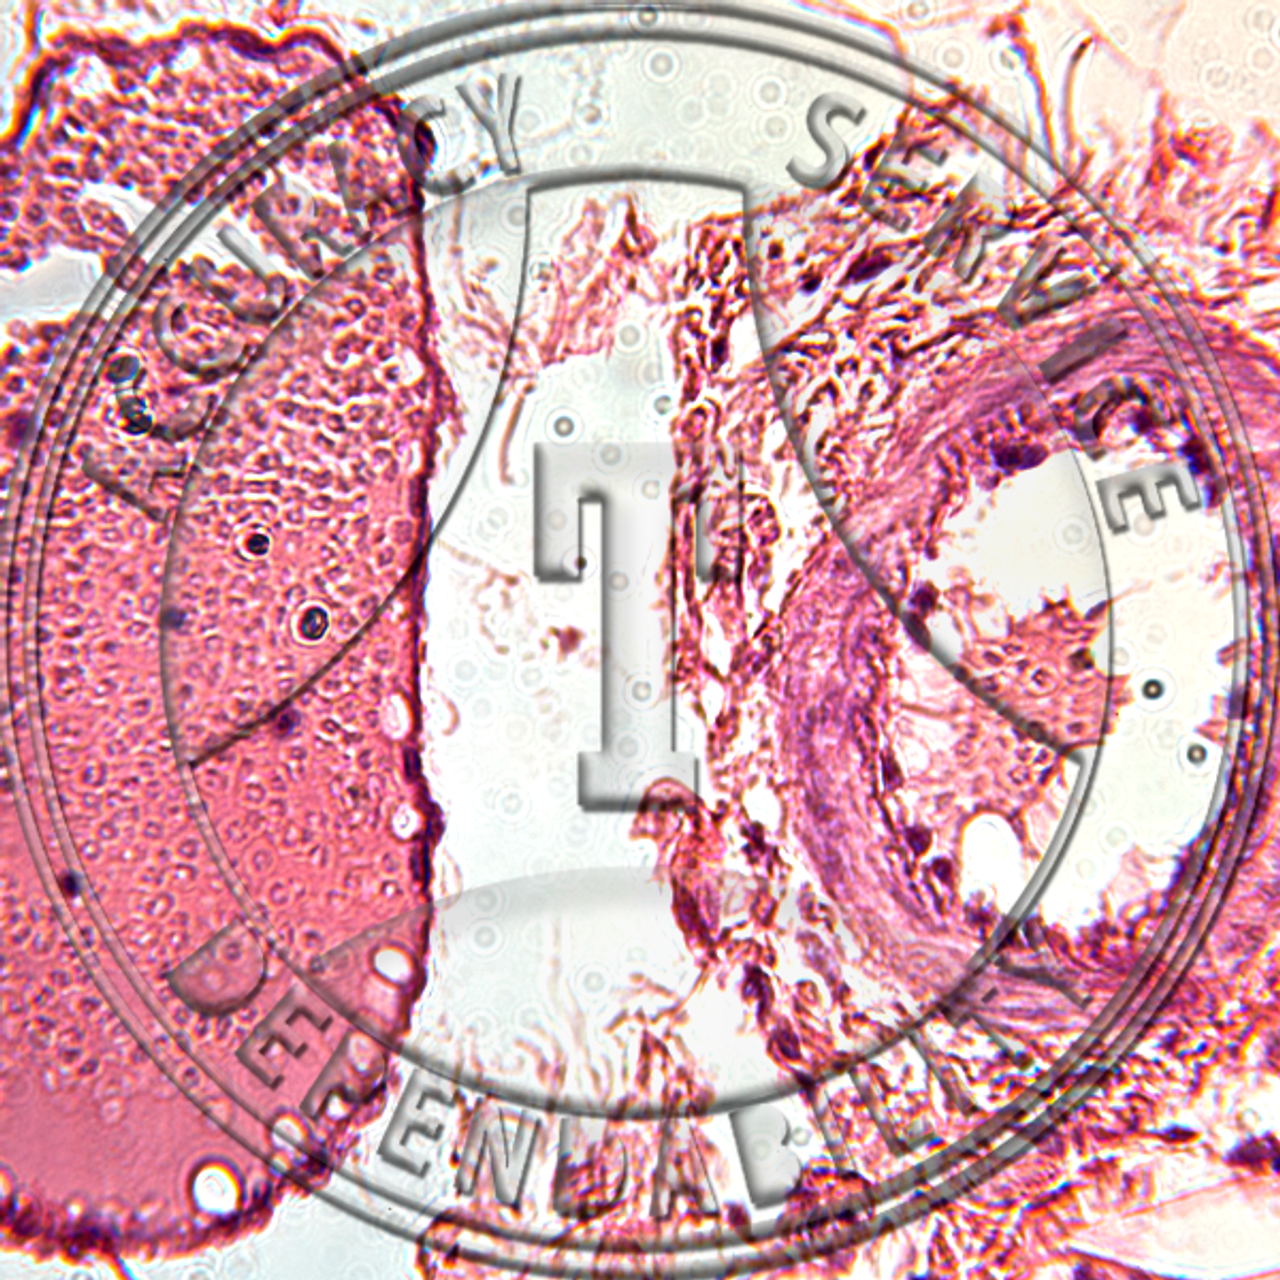 PMS1.20 - Artery, vein and capillaries, TS, H&E stain